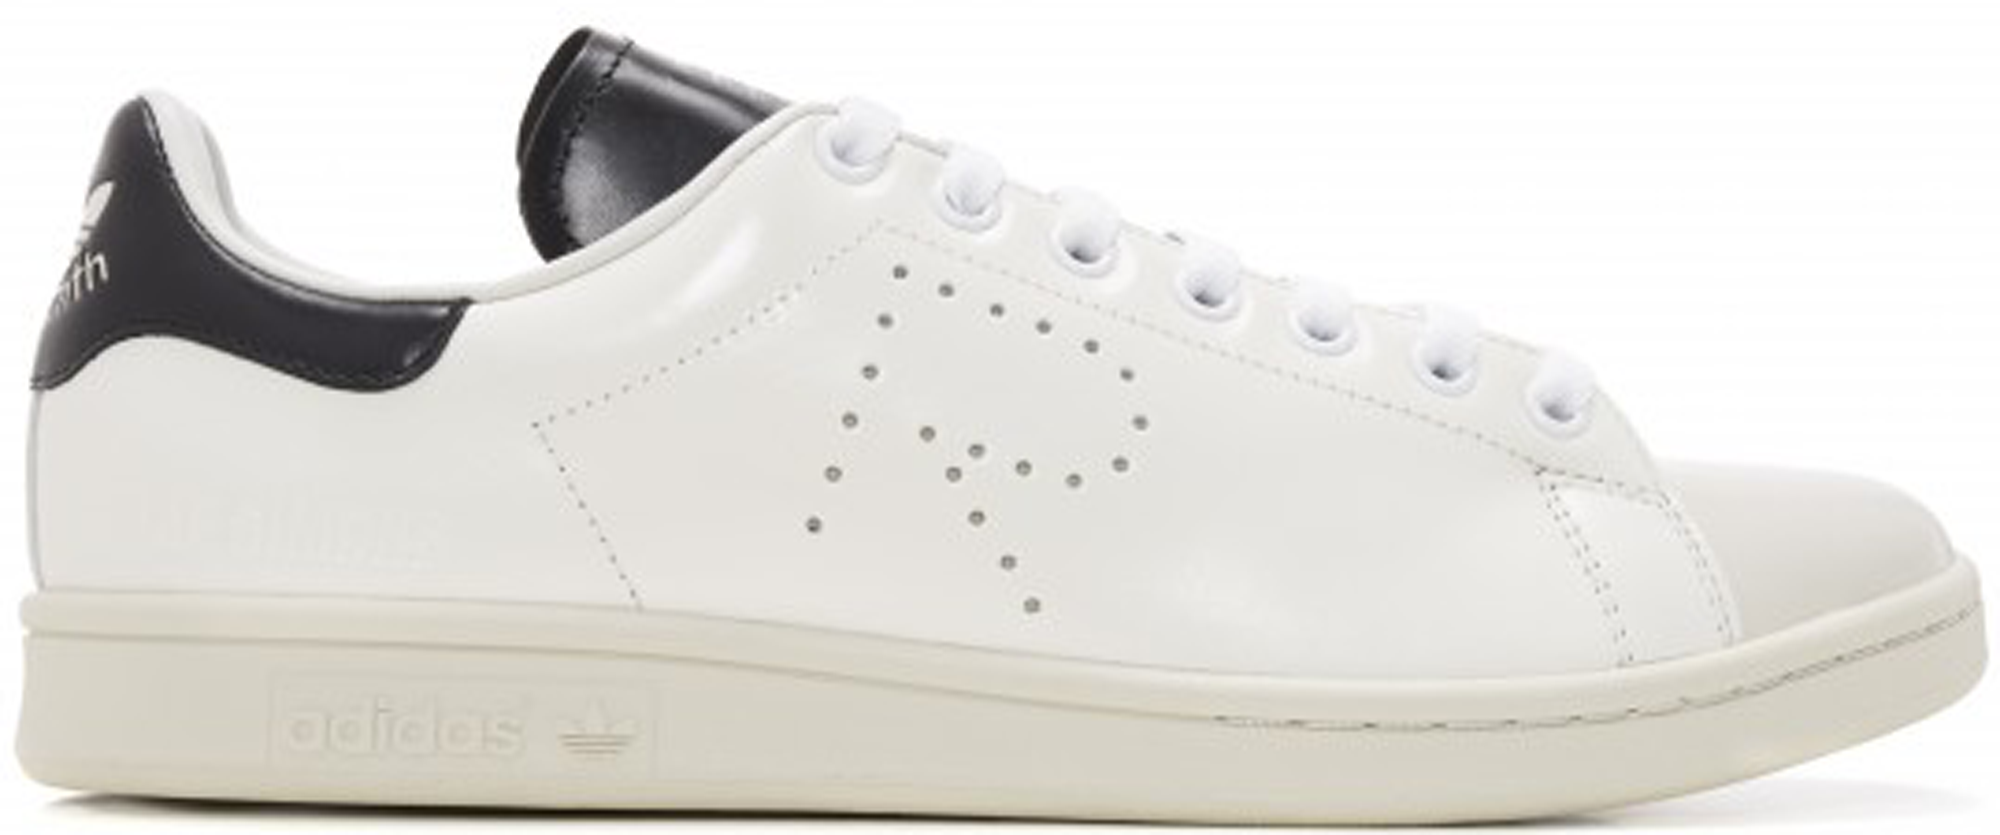 adidas Stan Smith Raf Simons White Black